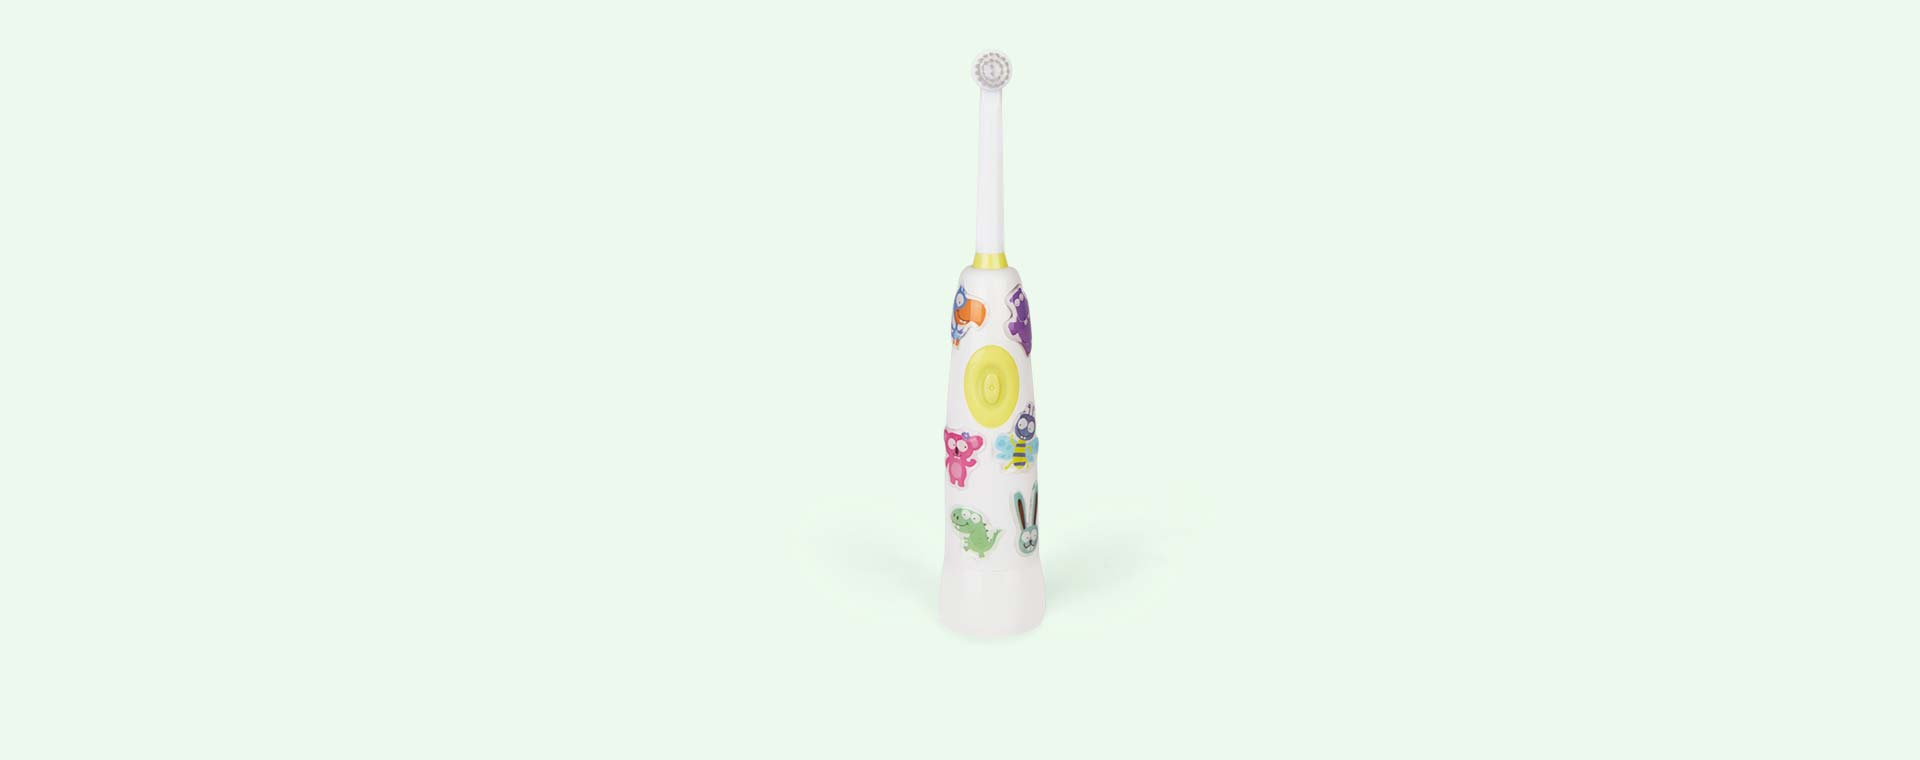 White JACK N' JILL Buzzy Brush Electric Musical Toothbrush